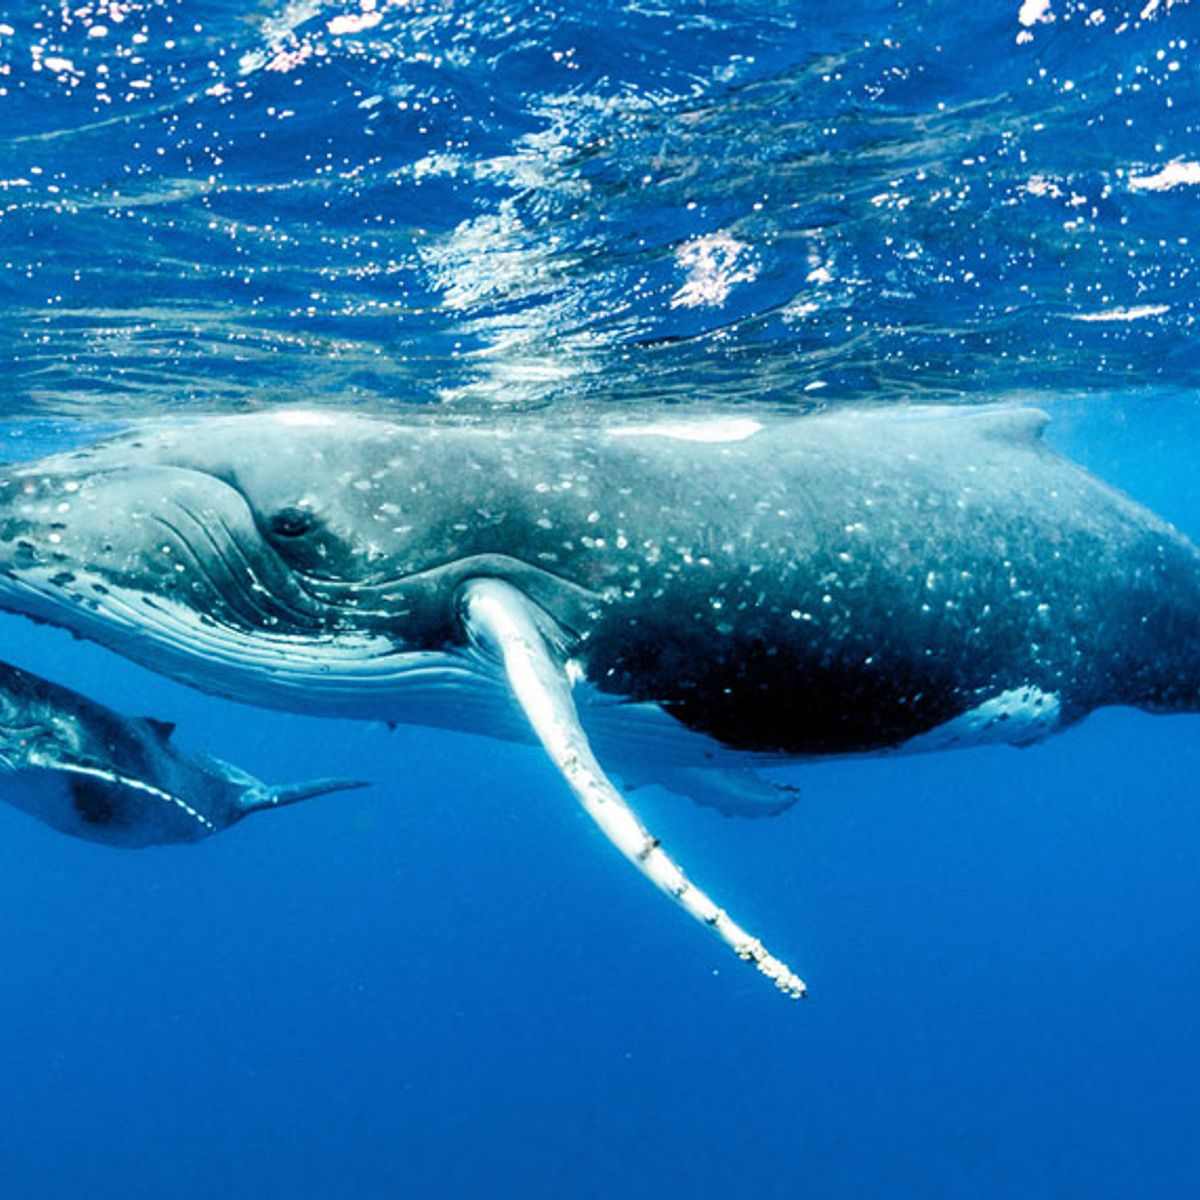 California's humpback whales are threatened by shipping traffic